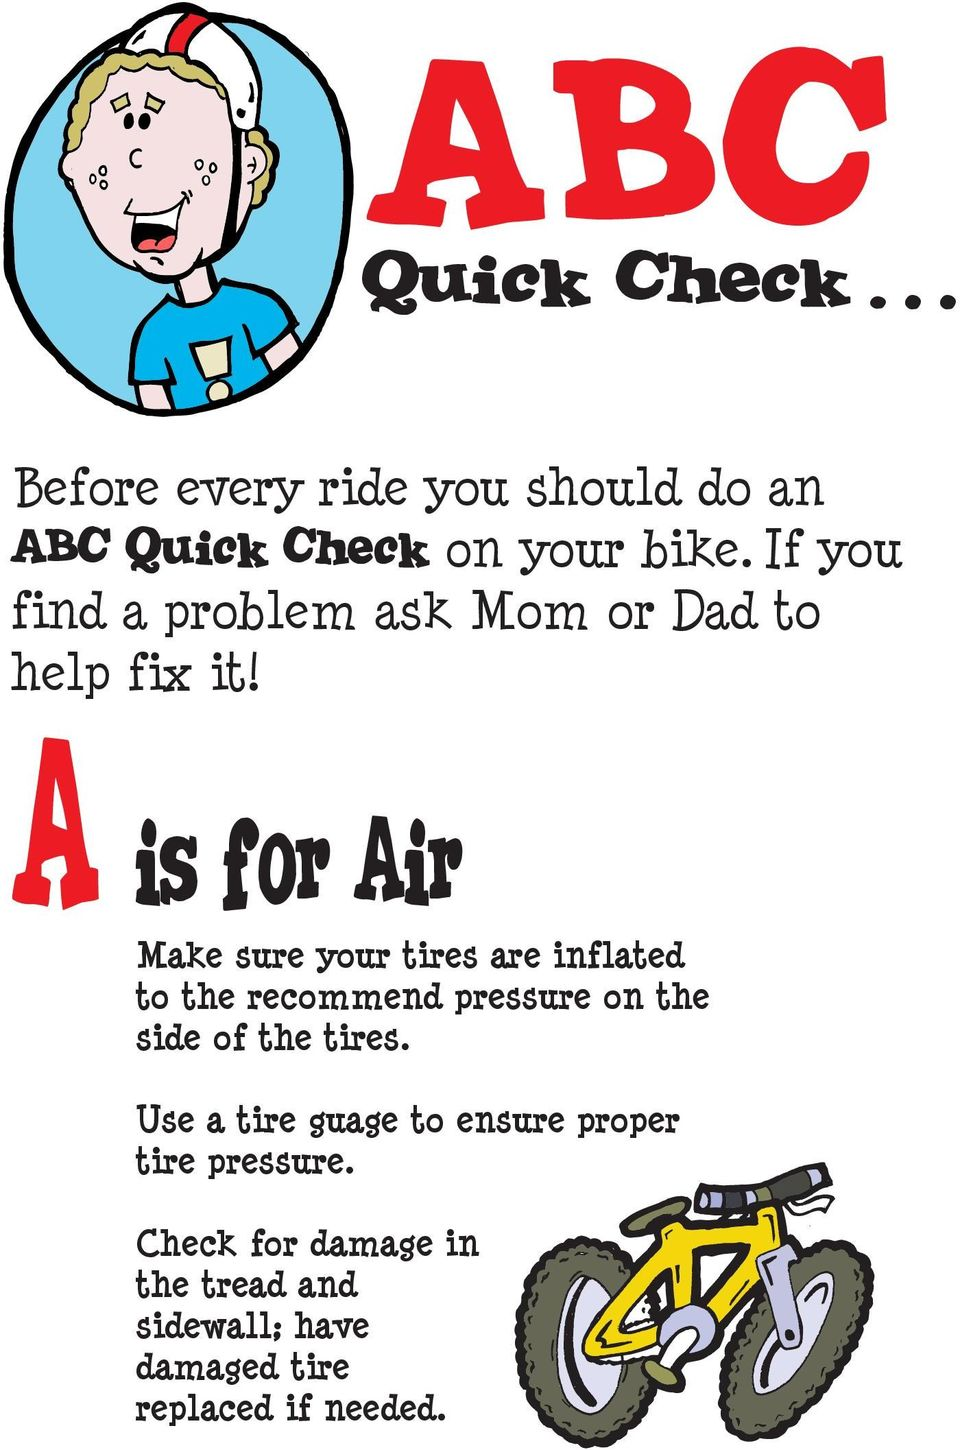 A is for Air Make sure your tires are inflated to the recommend pressure on the side of the